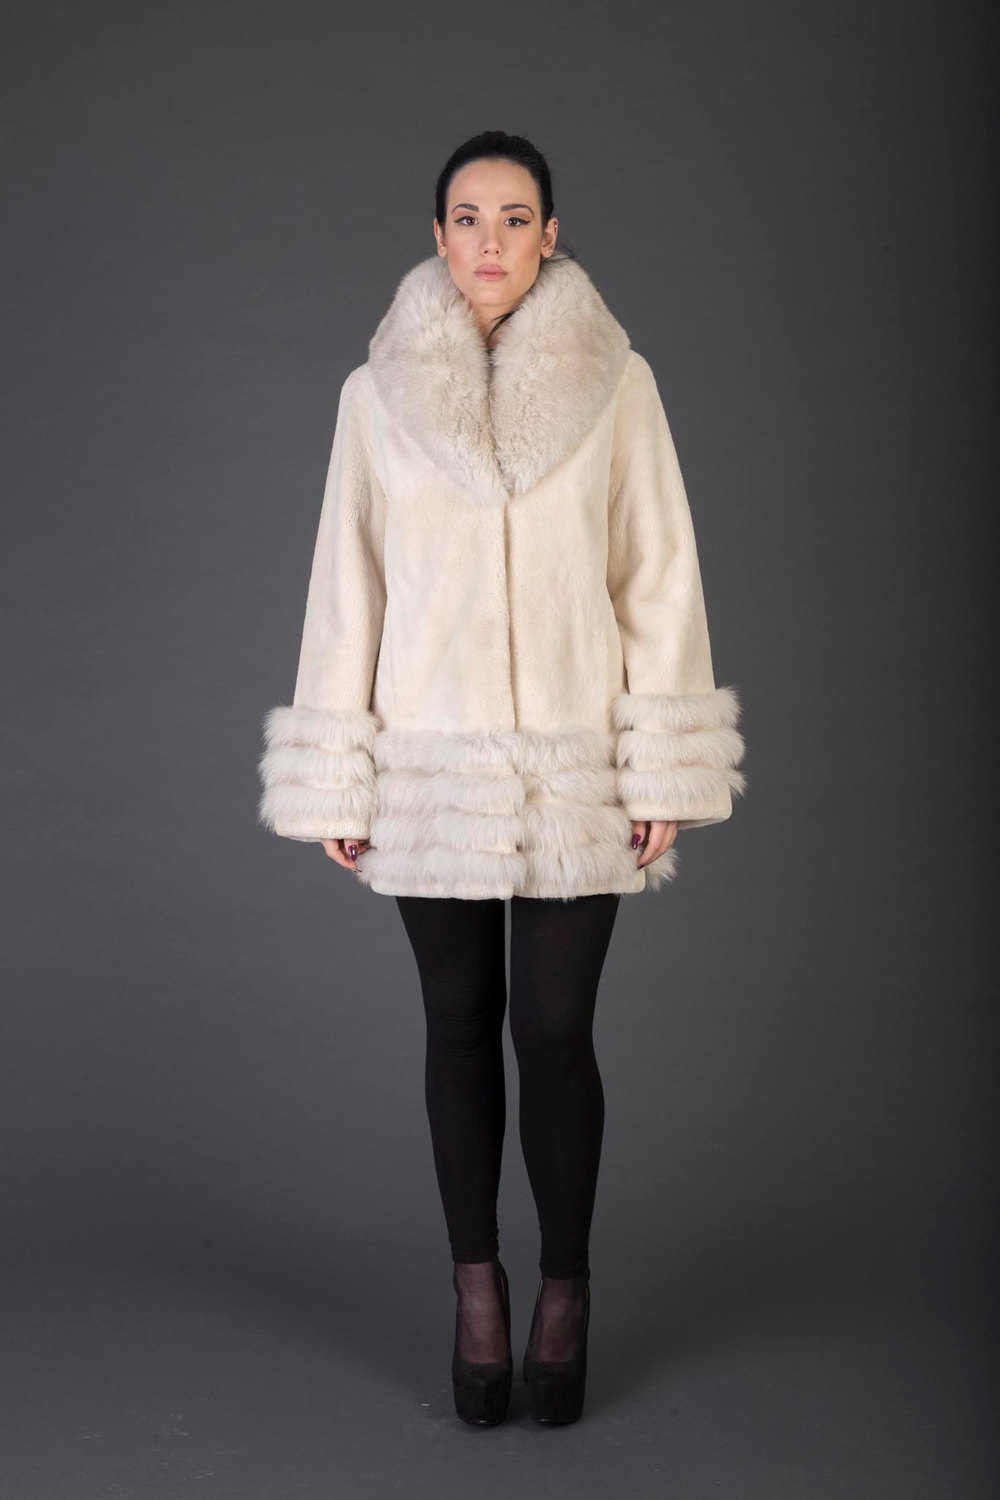 Luxury gift/Beige Beaver Fur Coat/Fur jacket with Collar and Tripple cuffs / Wed